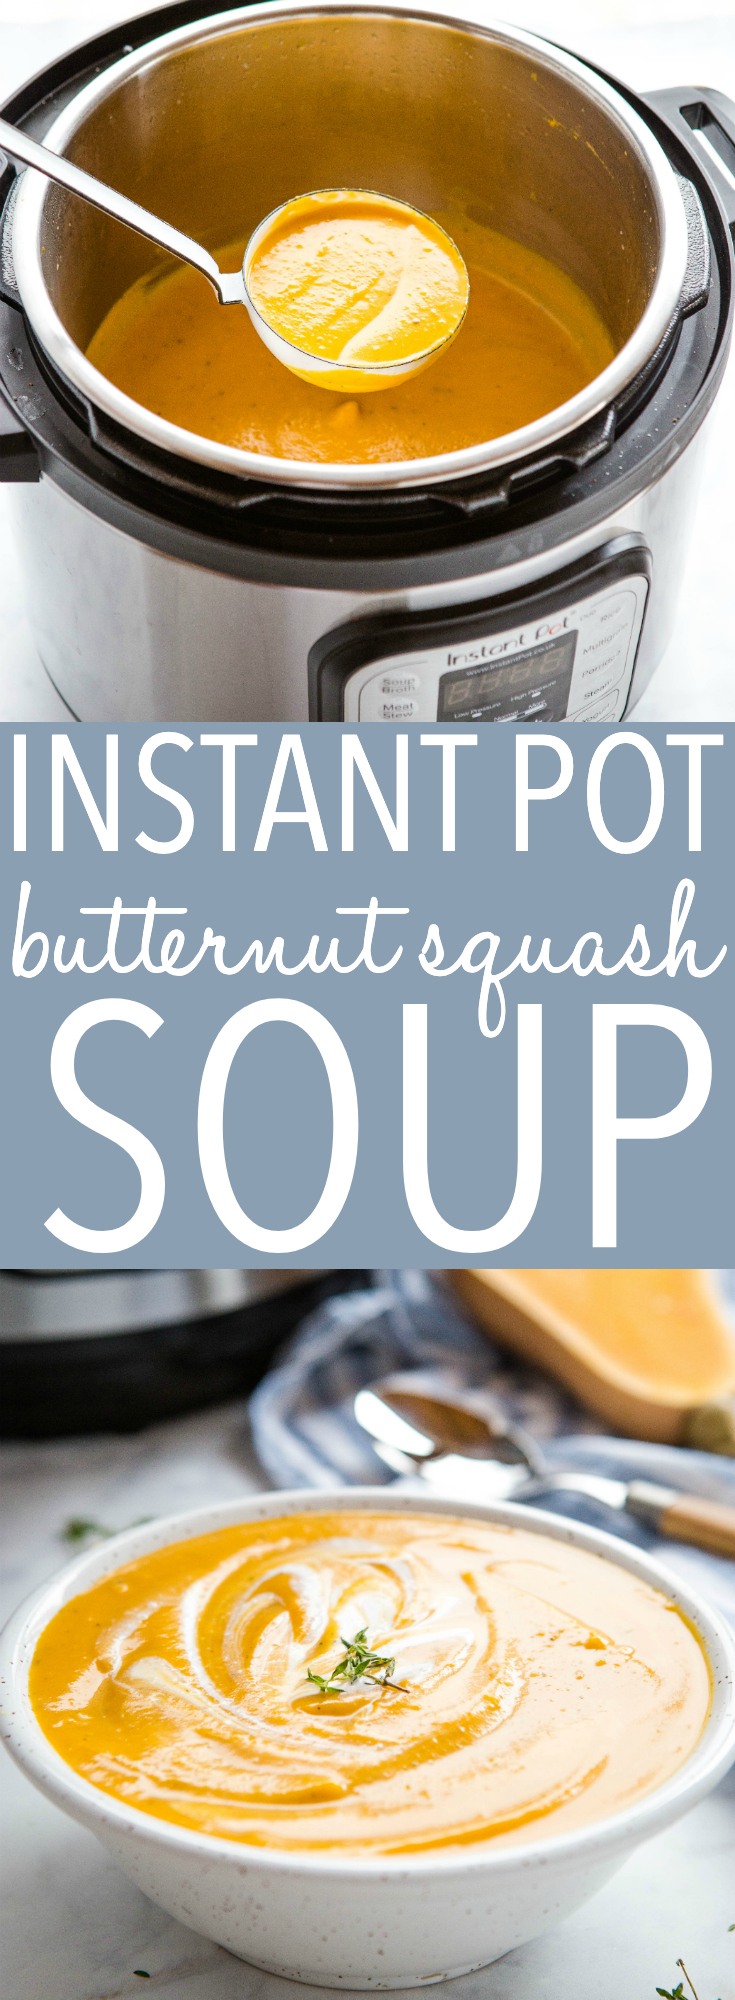 This Instant Pot Creamy Butternut Squash Soup is a delicious comforting soup that's deliciously vegan and dairy-free! On the table in 35 minutes or less! Recipe from thebusybaker.ca! #recipe #instantpot #butternutsquash #soup #instantpotsoup #fast #easy #familymeal #vegan #dairyfree via @busybakerblog